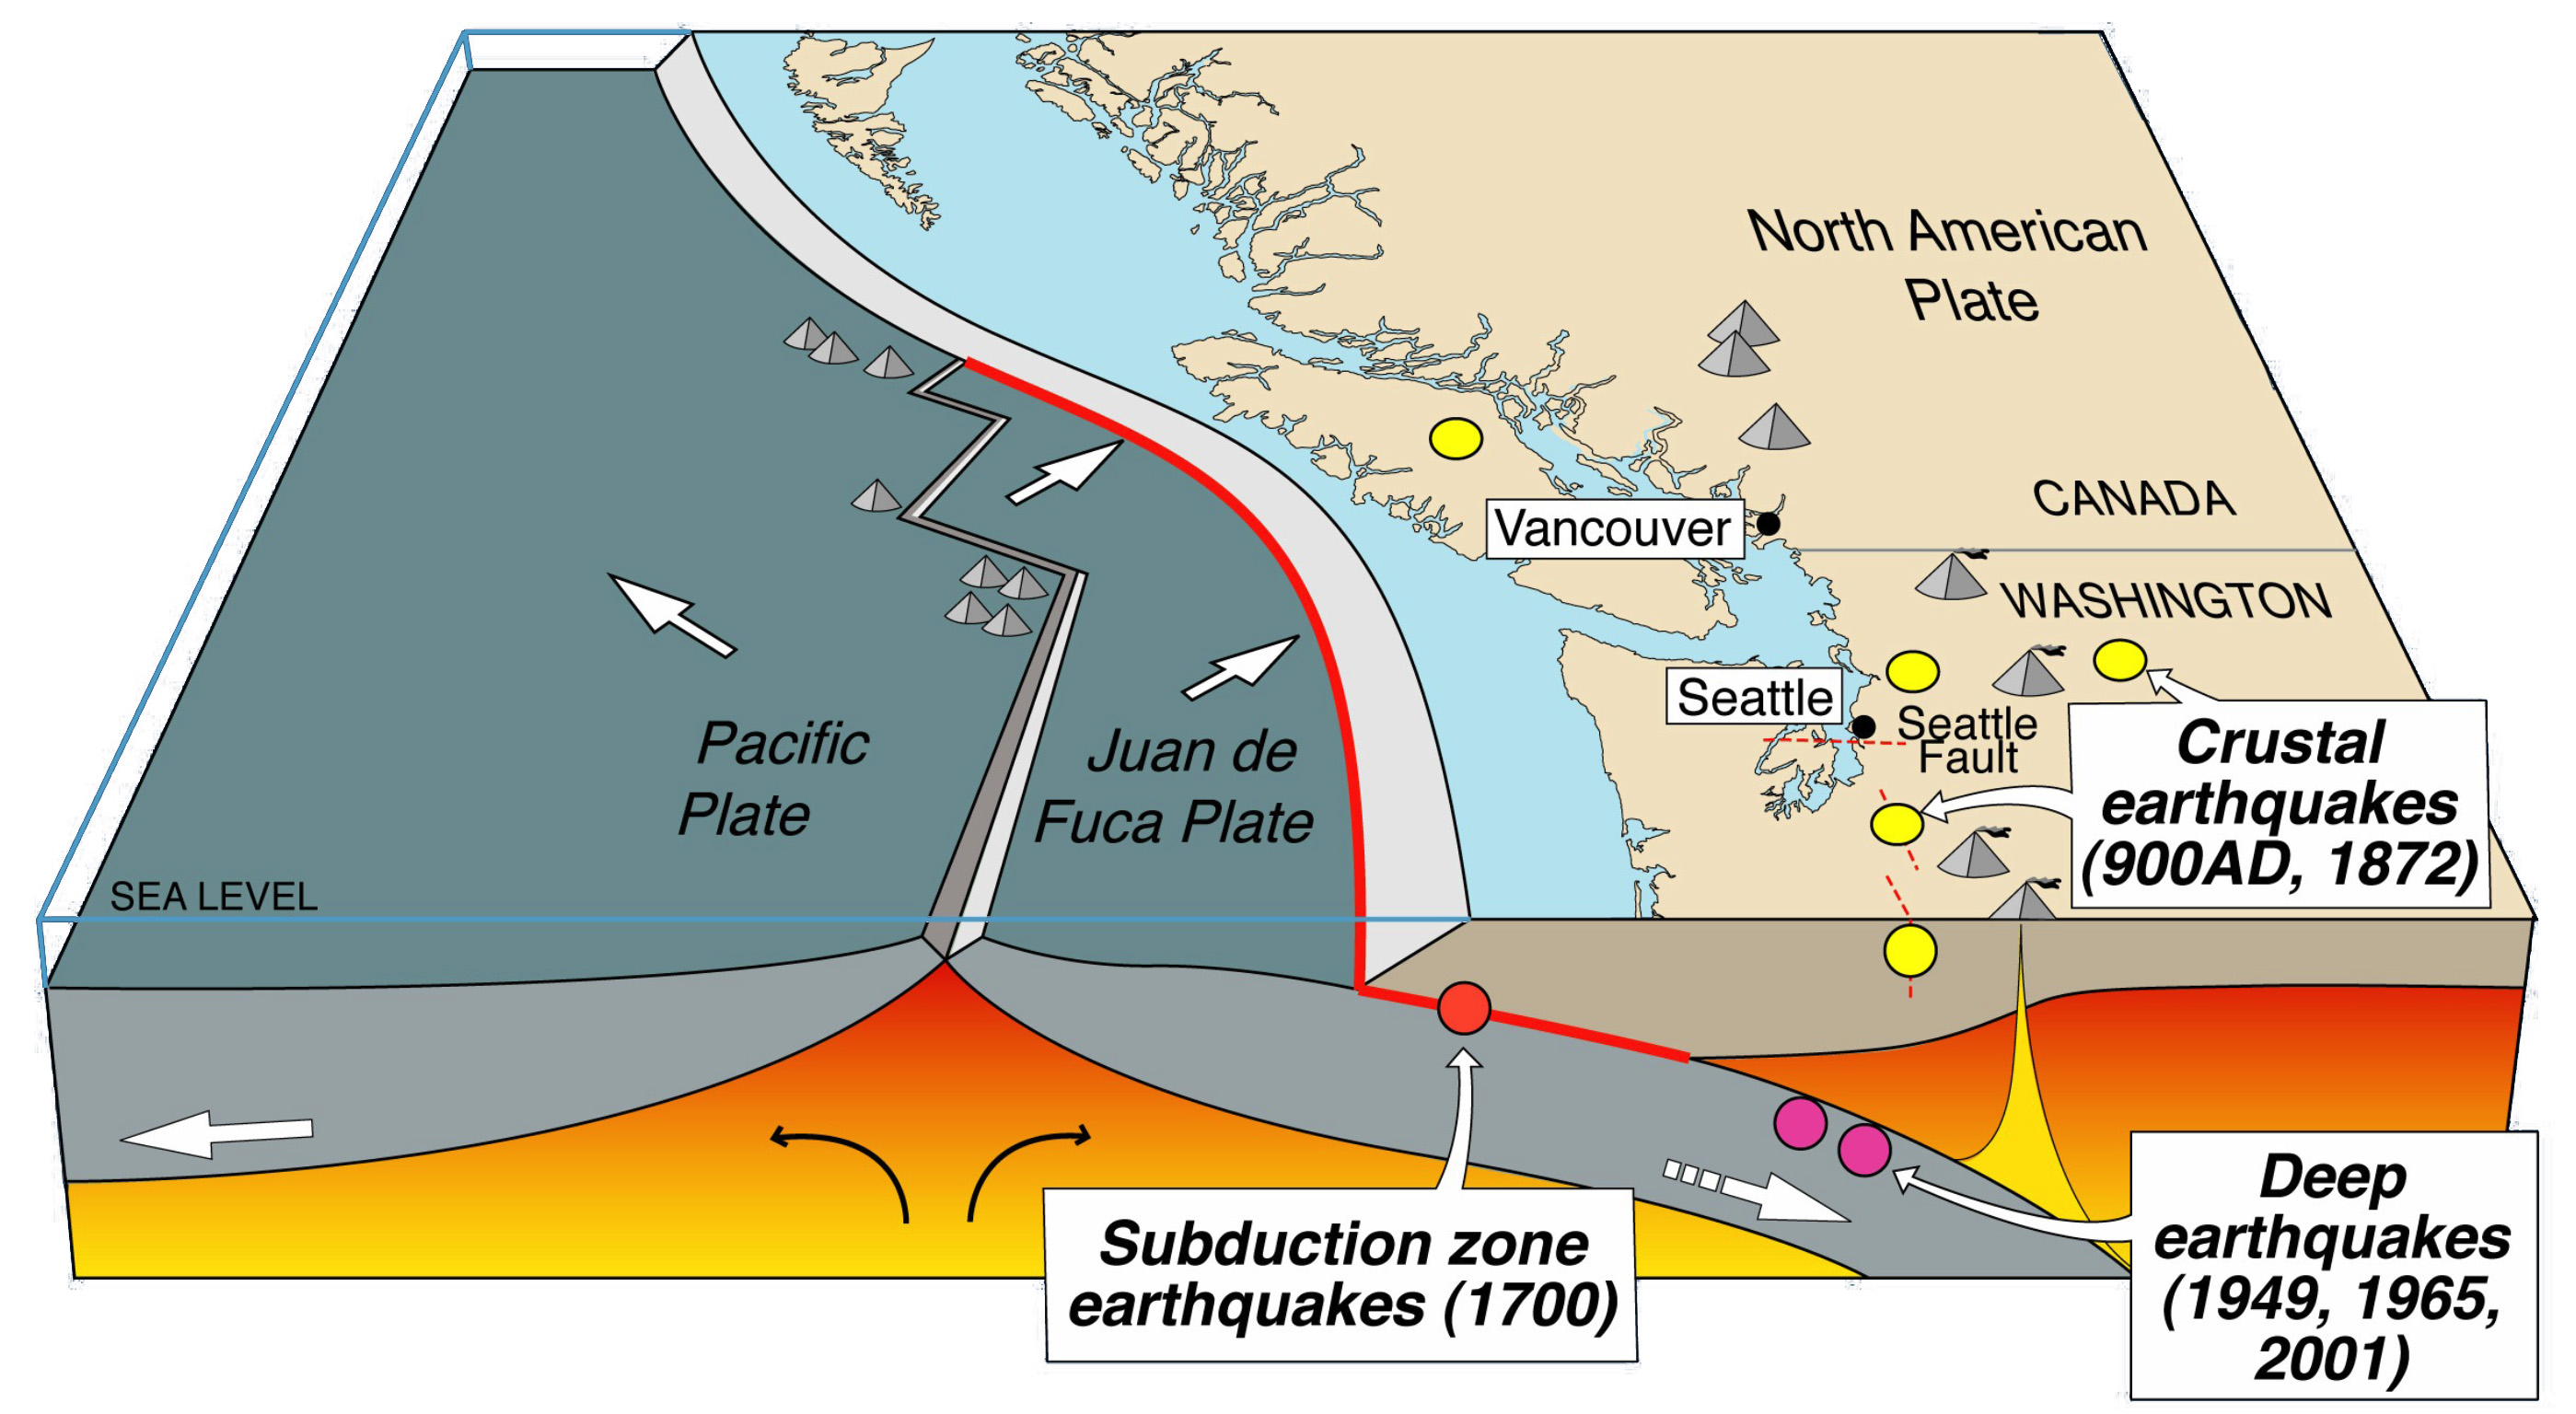 The Cascadia Subduction Zone Big One is overdue, Cascadia Subduction Zone, Cascadia Subduction Zone earthquake, Cascadia Subduction Zone big one, big one news, news about Cascadia Subduction Zone earthquake, Cascadia Subduction Zone apocalypse quake, quake at Cascadia Subduction Zone news